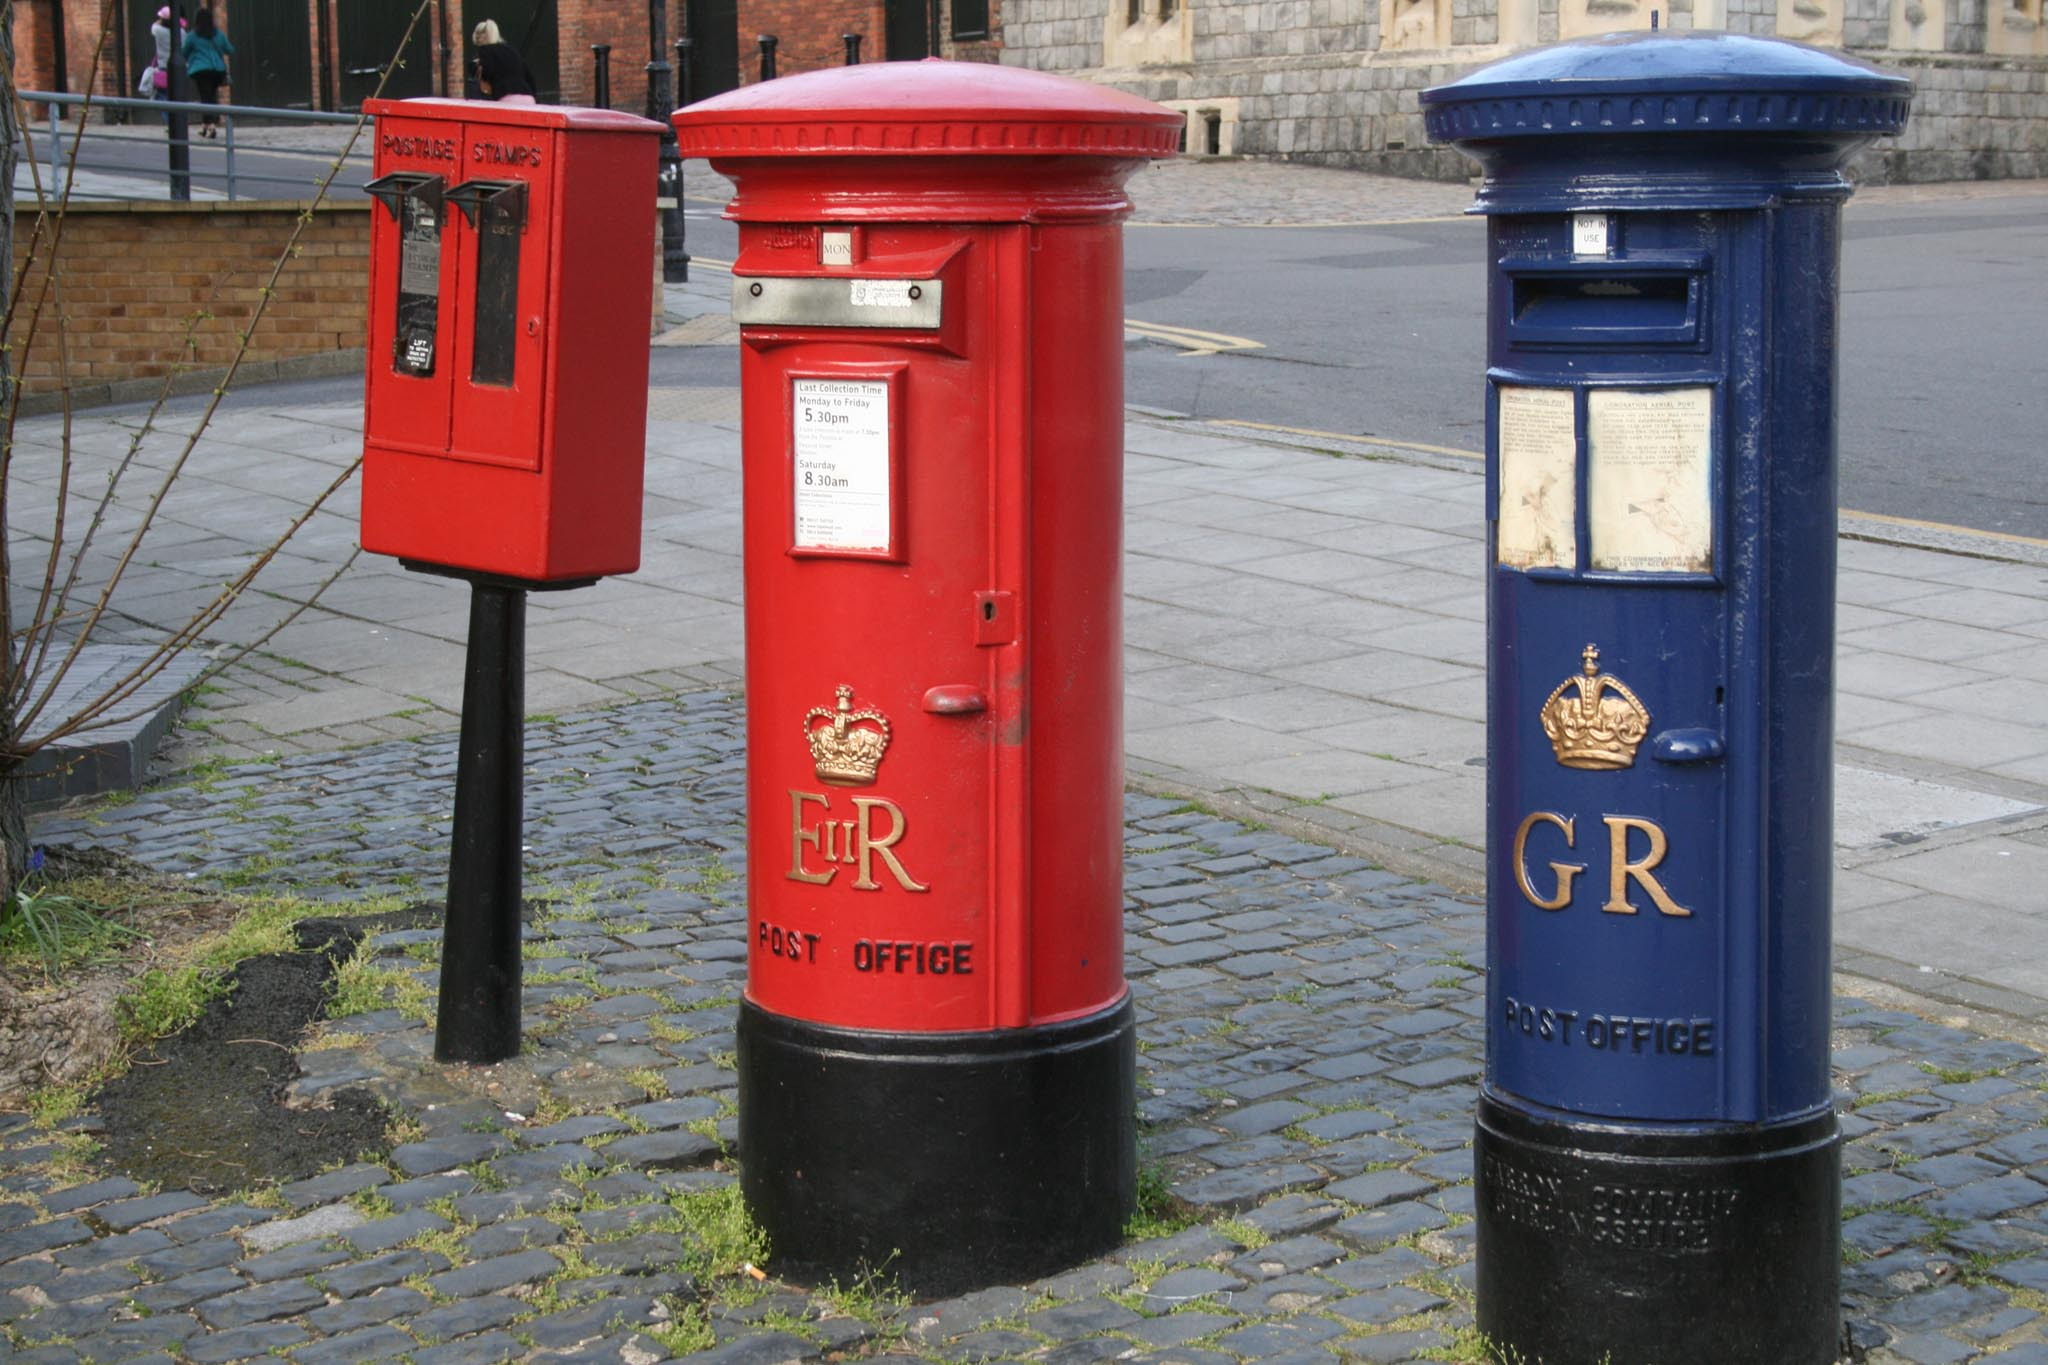 GR Airmail pillar box 1930s, with later E2R, Berks. Robert Cole